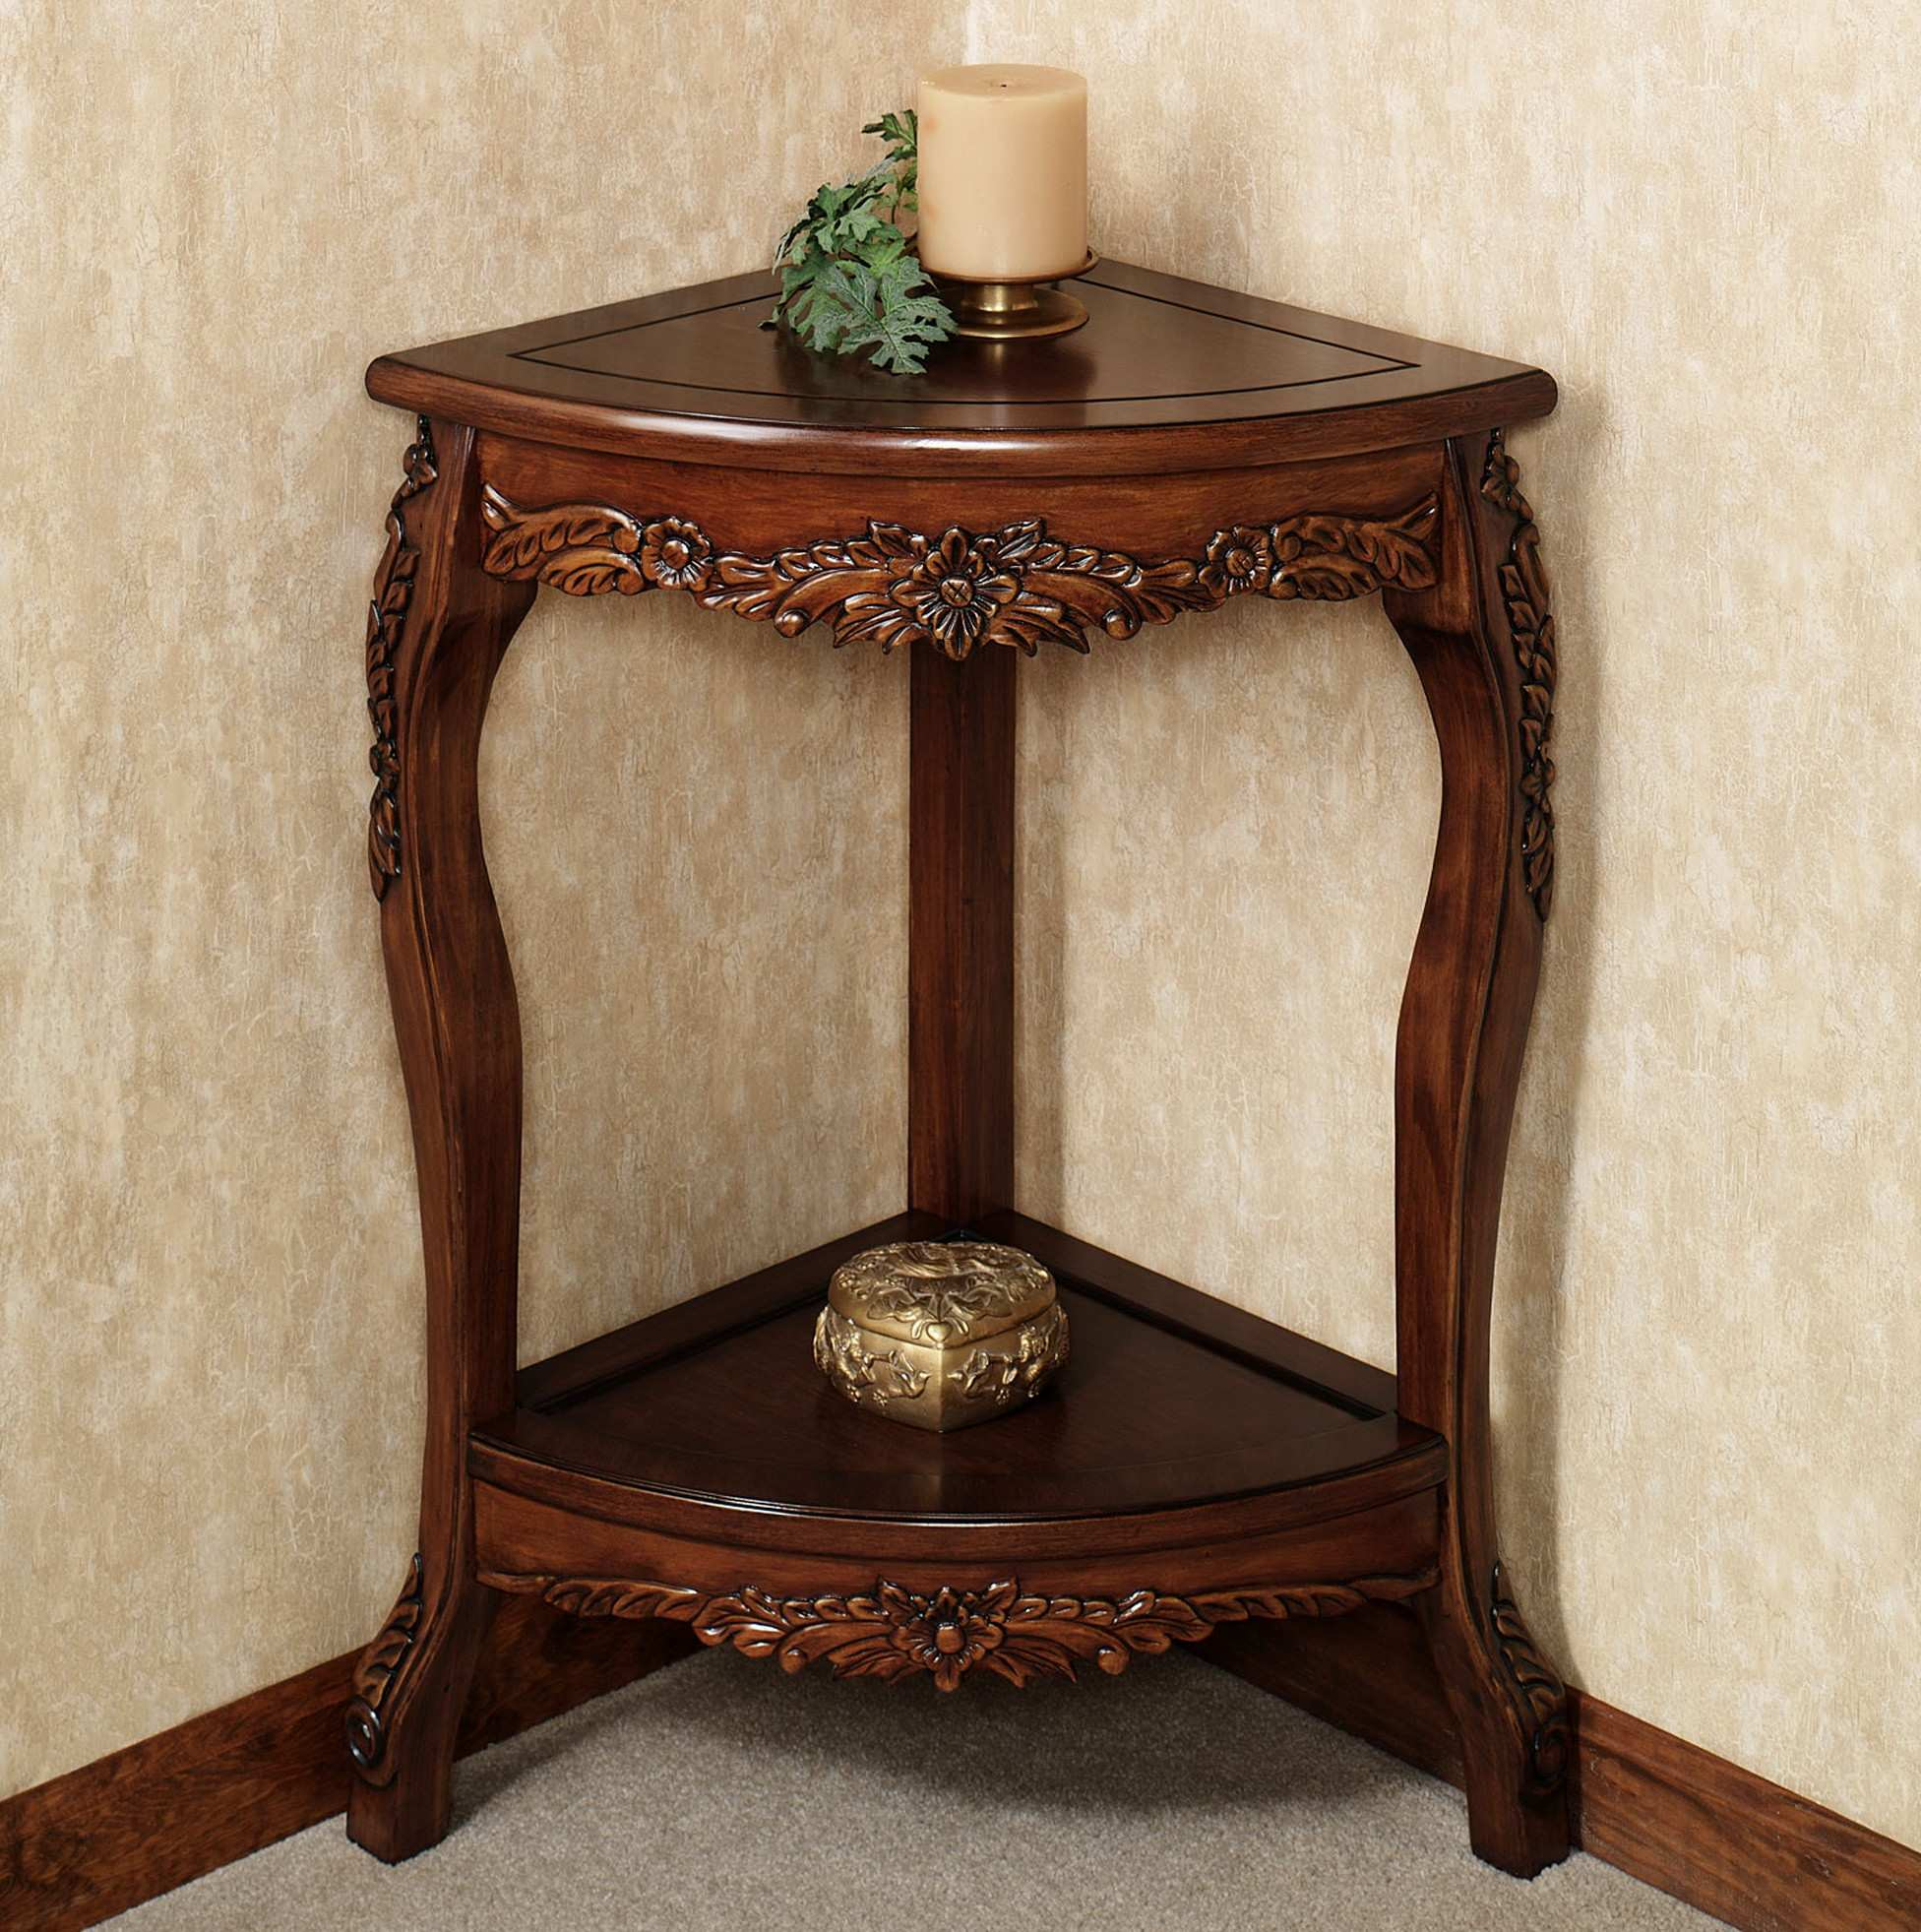 elegant accent table decor ideas for how decorate the awesome alluring small corner home trestle dining set vintage marble top end tables black stool bedroom wall clock modern and